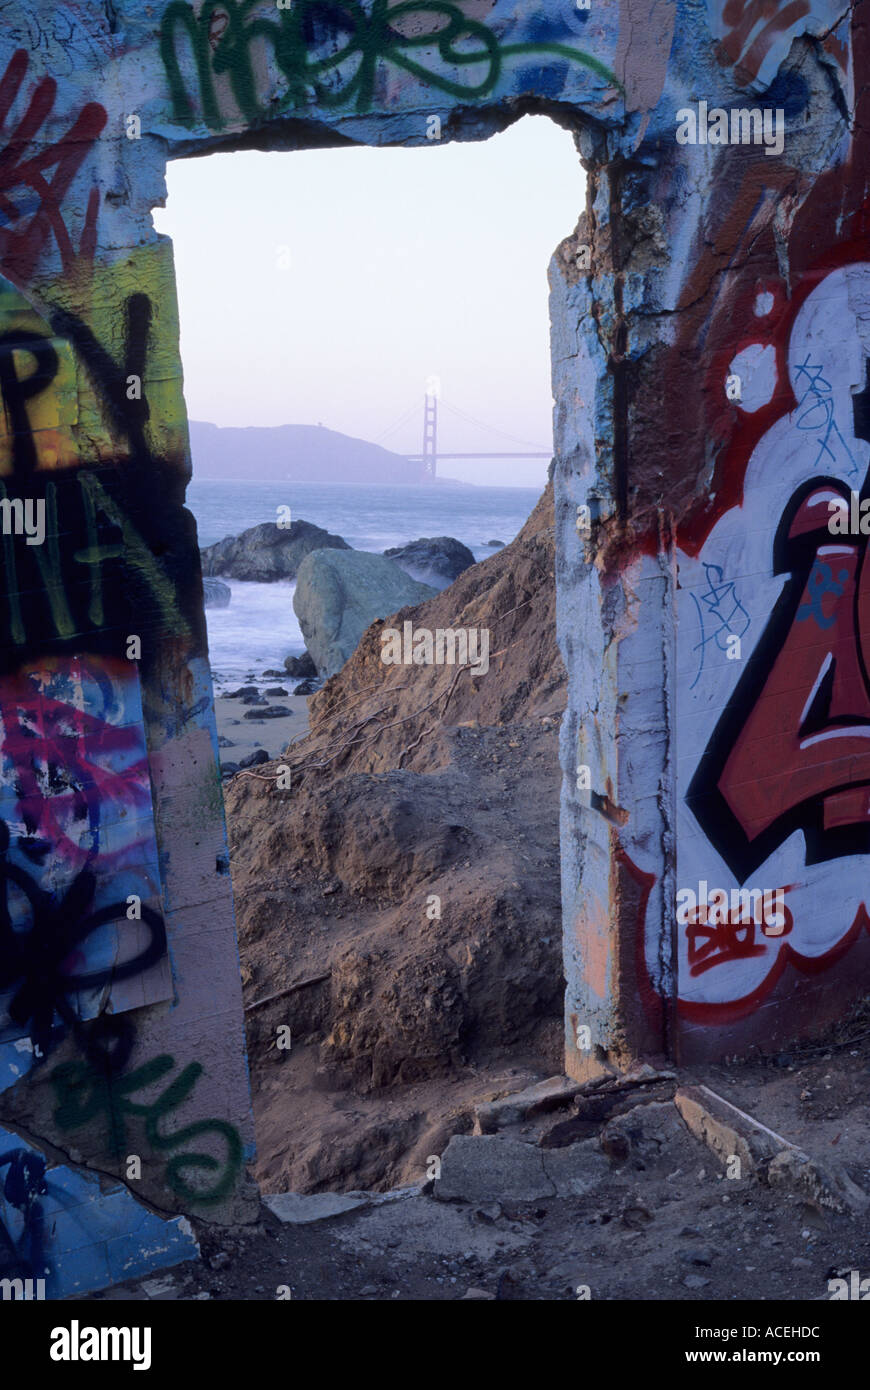 Golden Gate Bridge and old grafitti covered army structure, Land's End, GGNRA, San Francisco, California - Stock Image